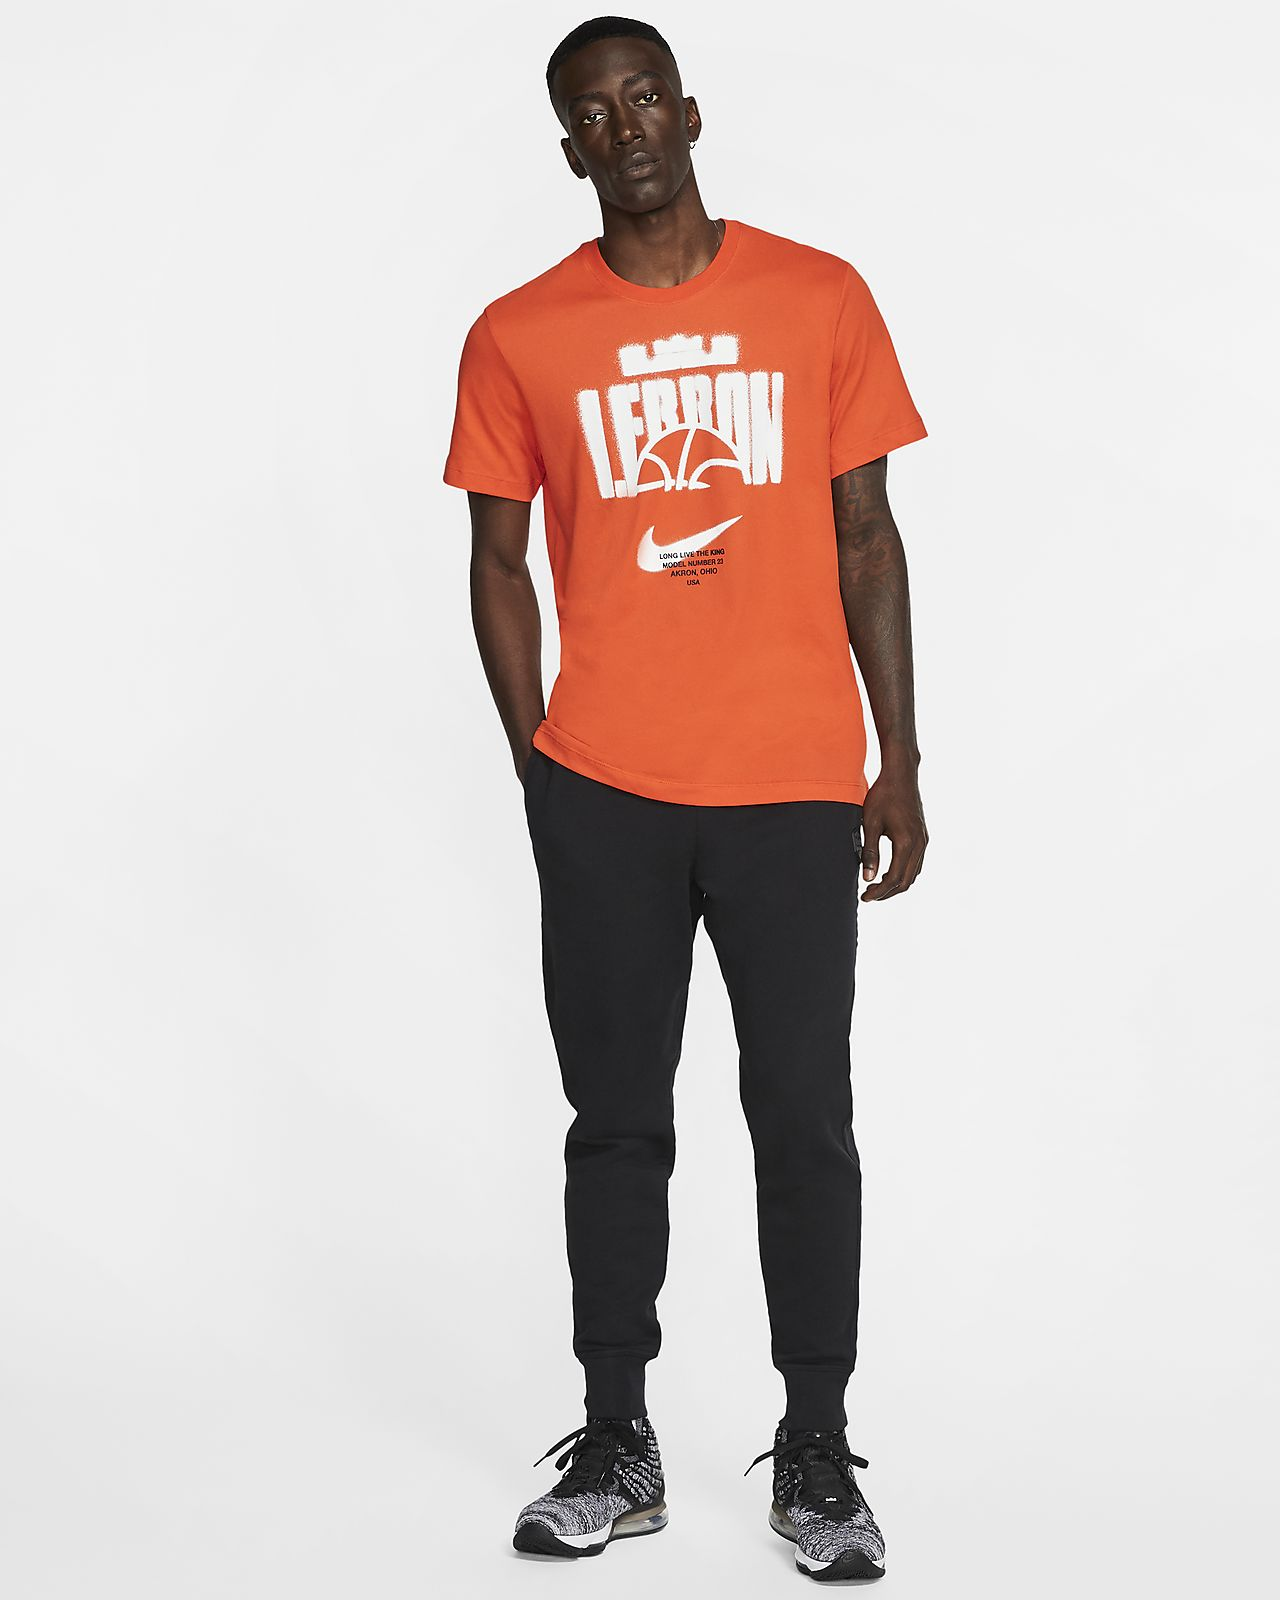 Whiteteam Orangeteam Orange Nike, Calzini da Basket